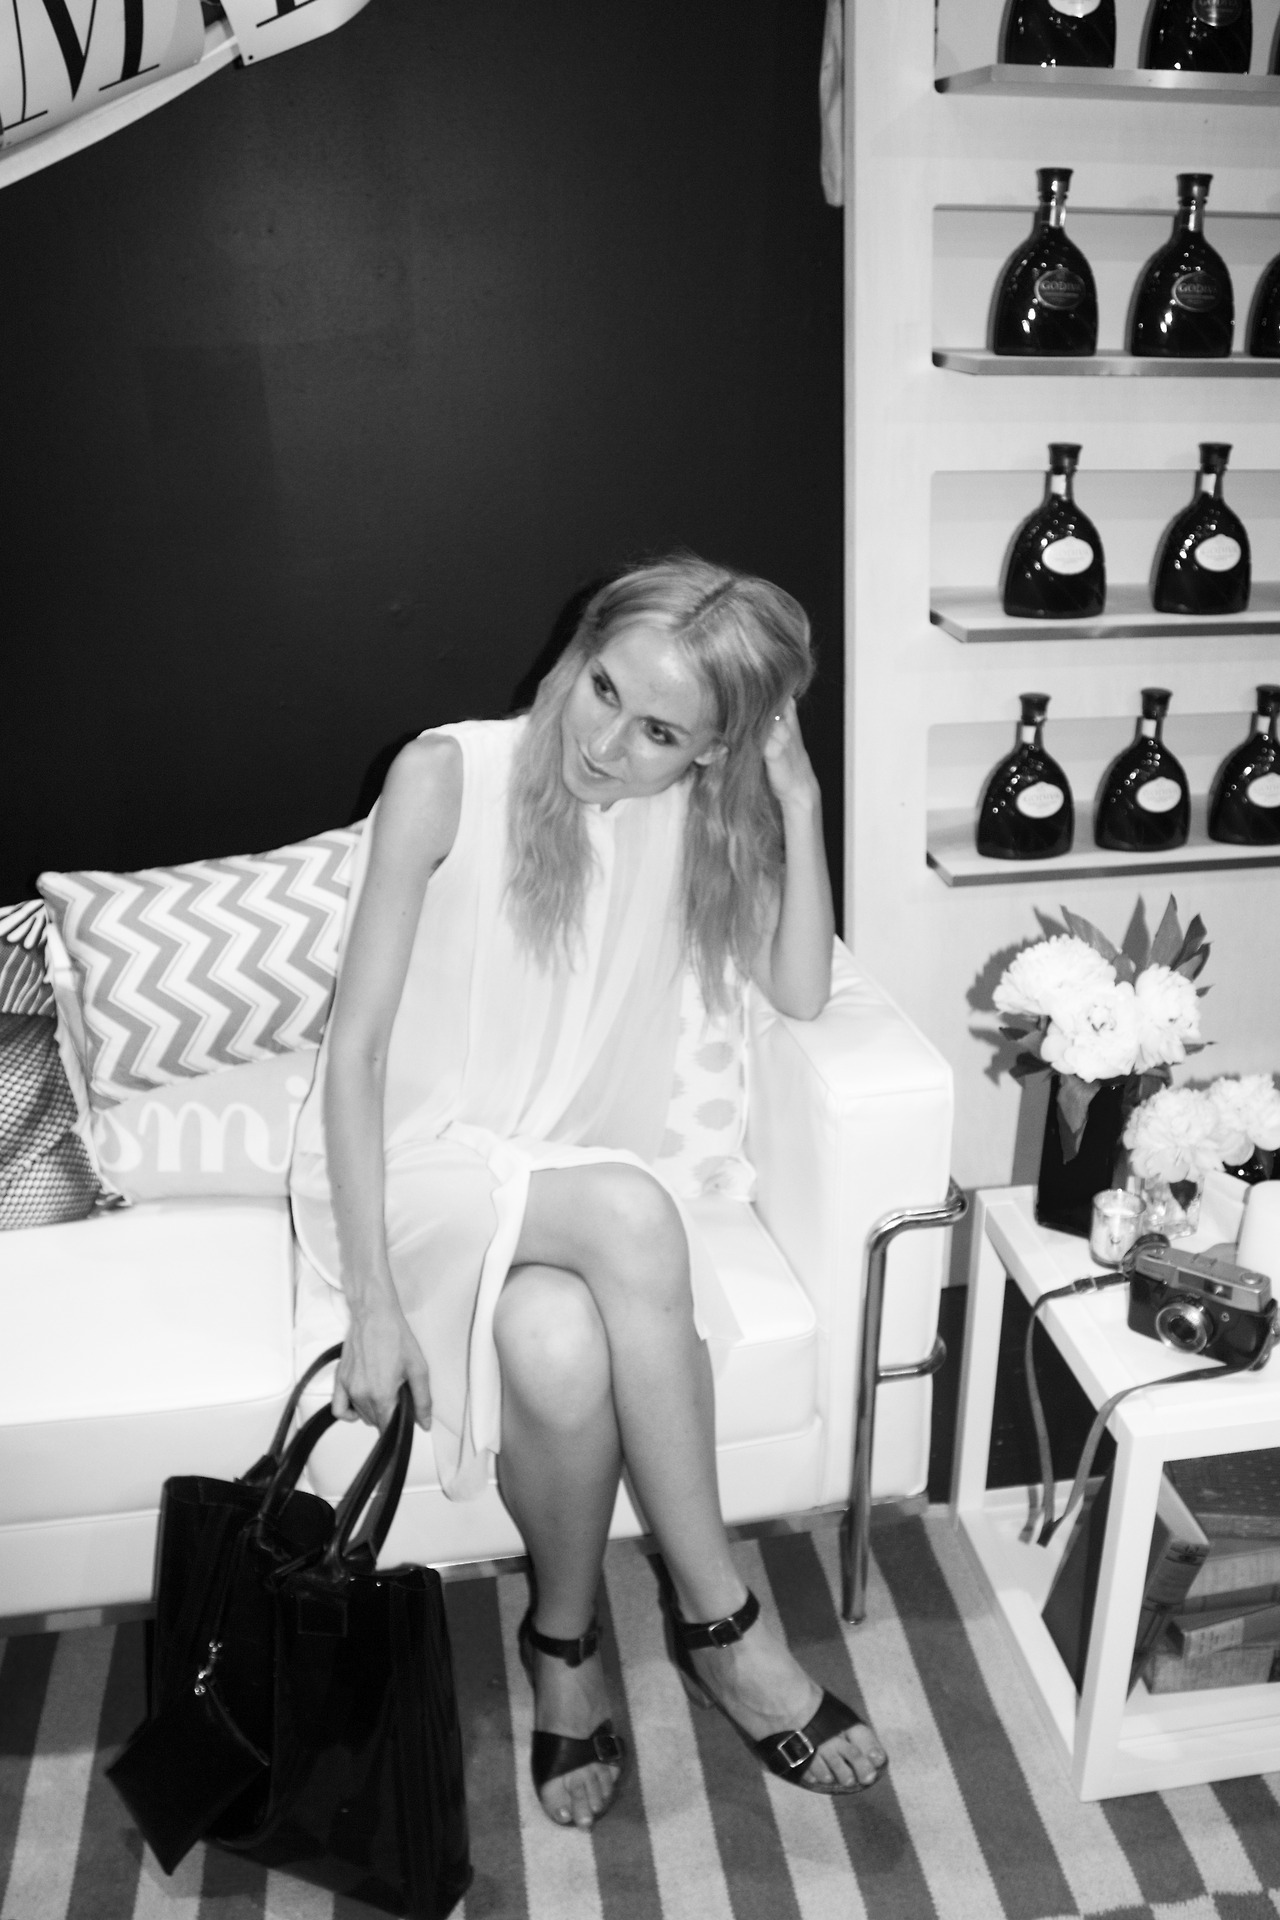 Verily Magazine Launch Party // LIFESTYLE   #outfit #show #party #blogger #magazine #industryfiles